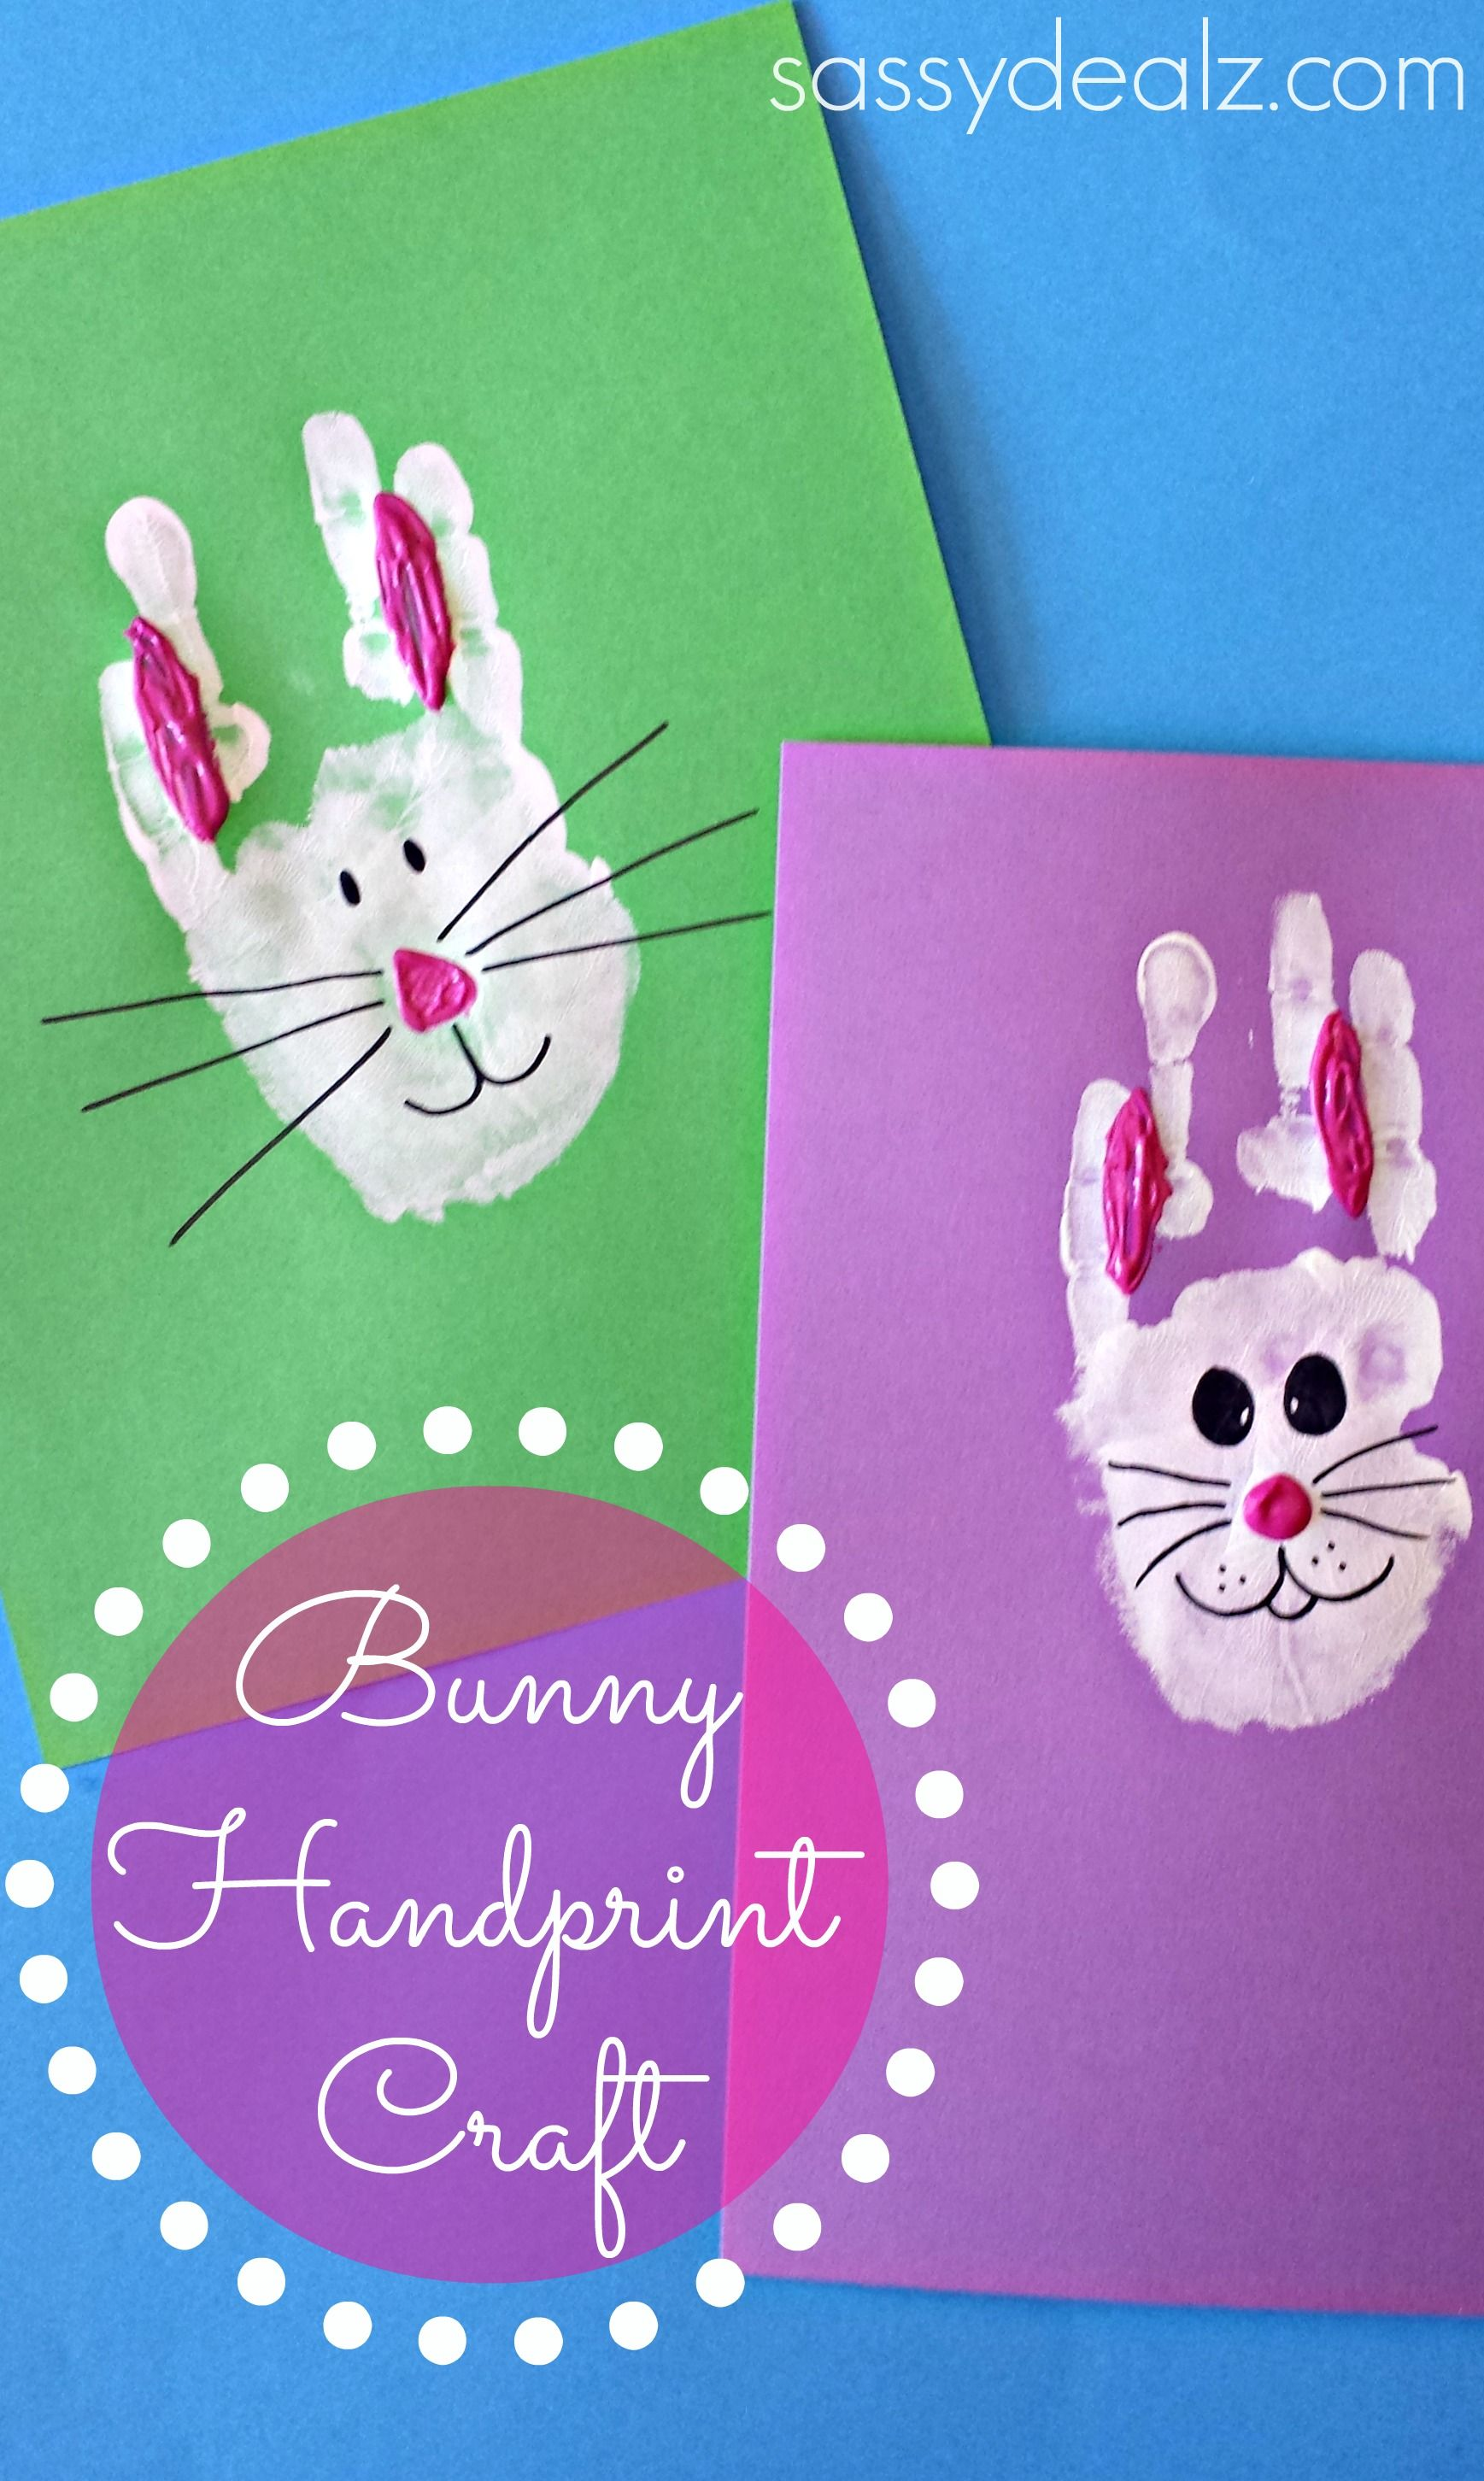 Bunny handprint craft art pinterest bunny rabbit bunny and bunny rabbit handprint craft for kids easter idea sassy dealz bunny rabbit handprint craft for kids easter idea if you enjoy arts and crafts youll negle Gallery